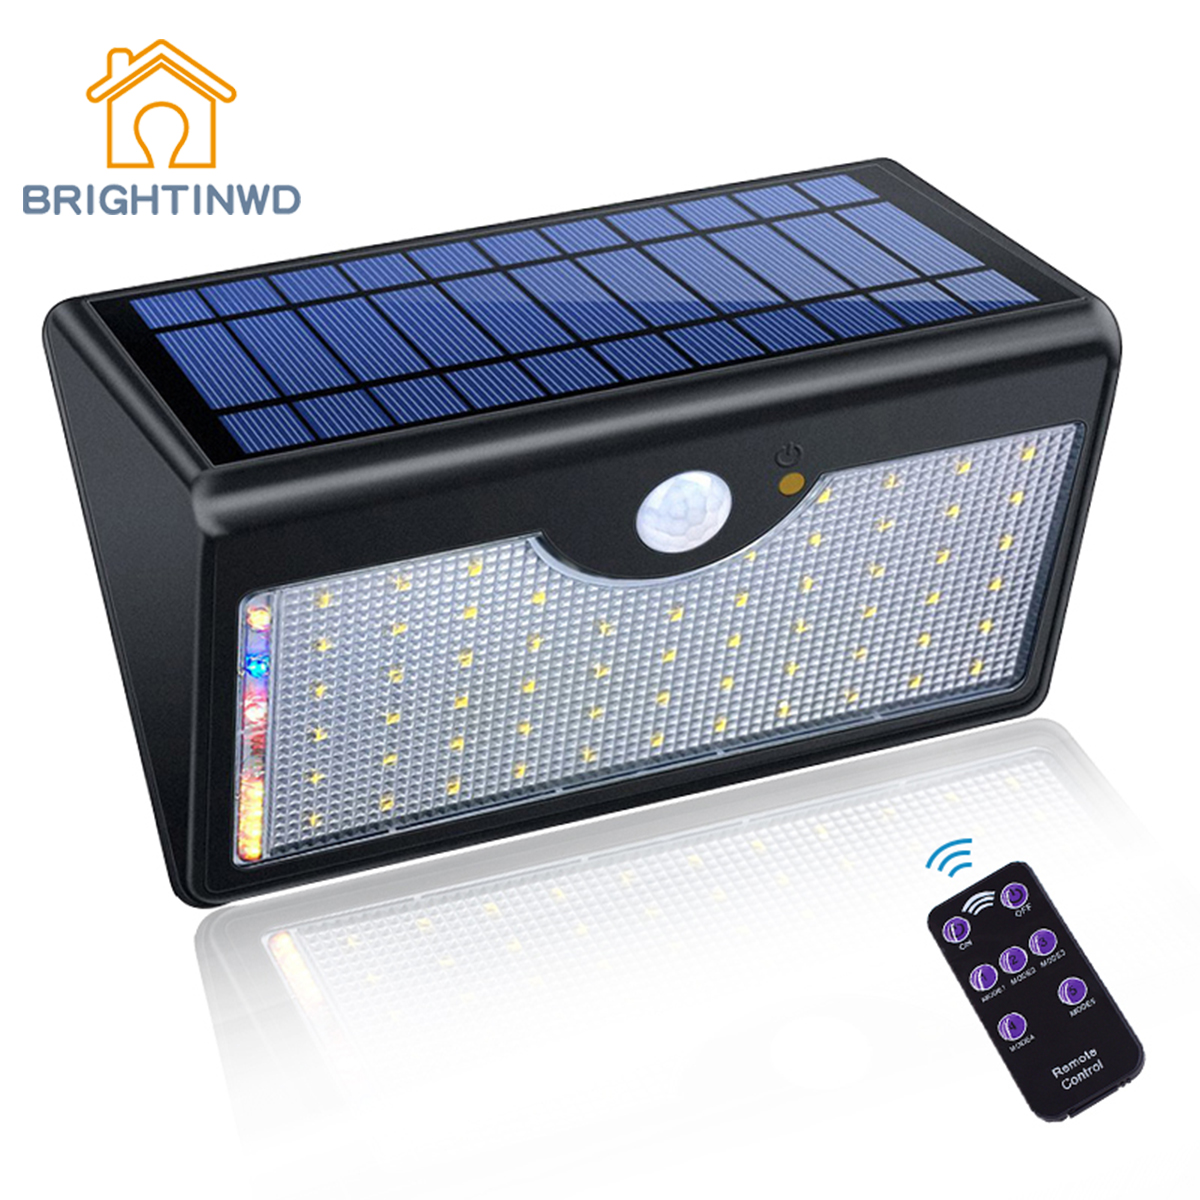 1300lm Super Bright Upgraded Lamp Lights For Outdoor Wall Yard Garden With Five Modes In One <font><b>Solar</b></font> Lamps <font><b>60</b></font> <font><b>LED</b></font> <font><b>Solar</b></font> Light image